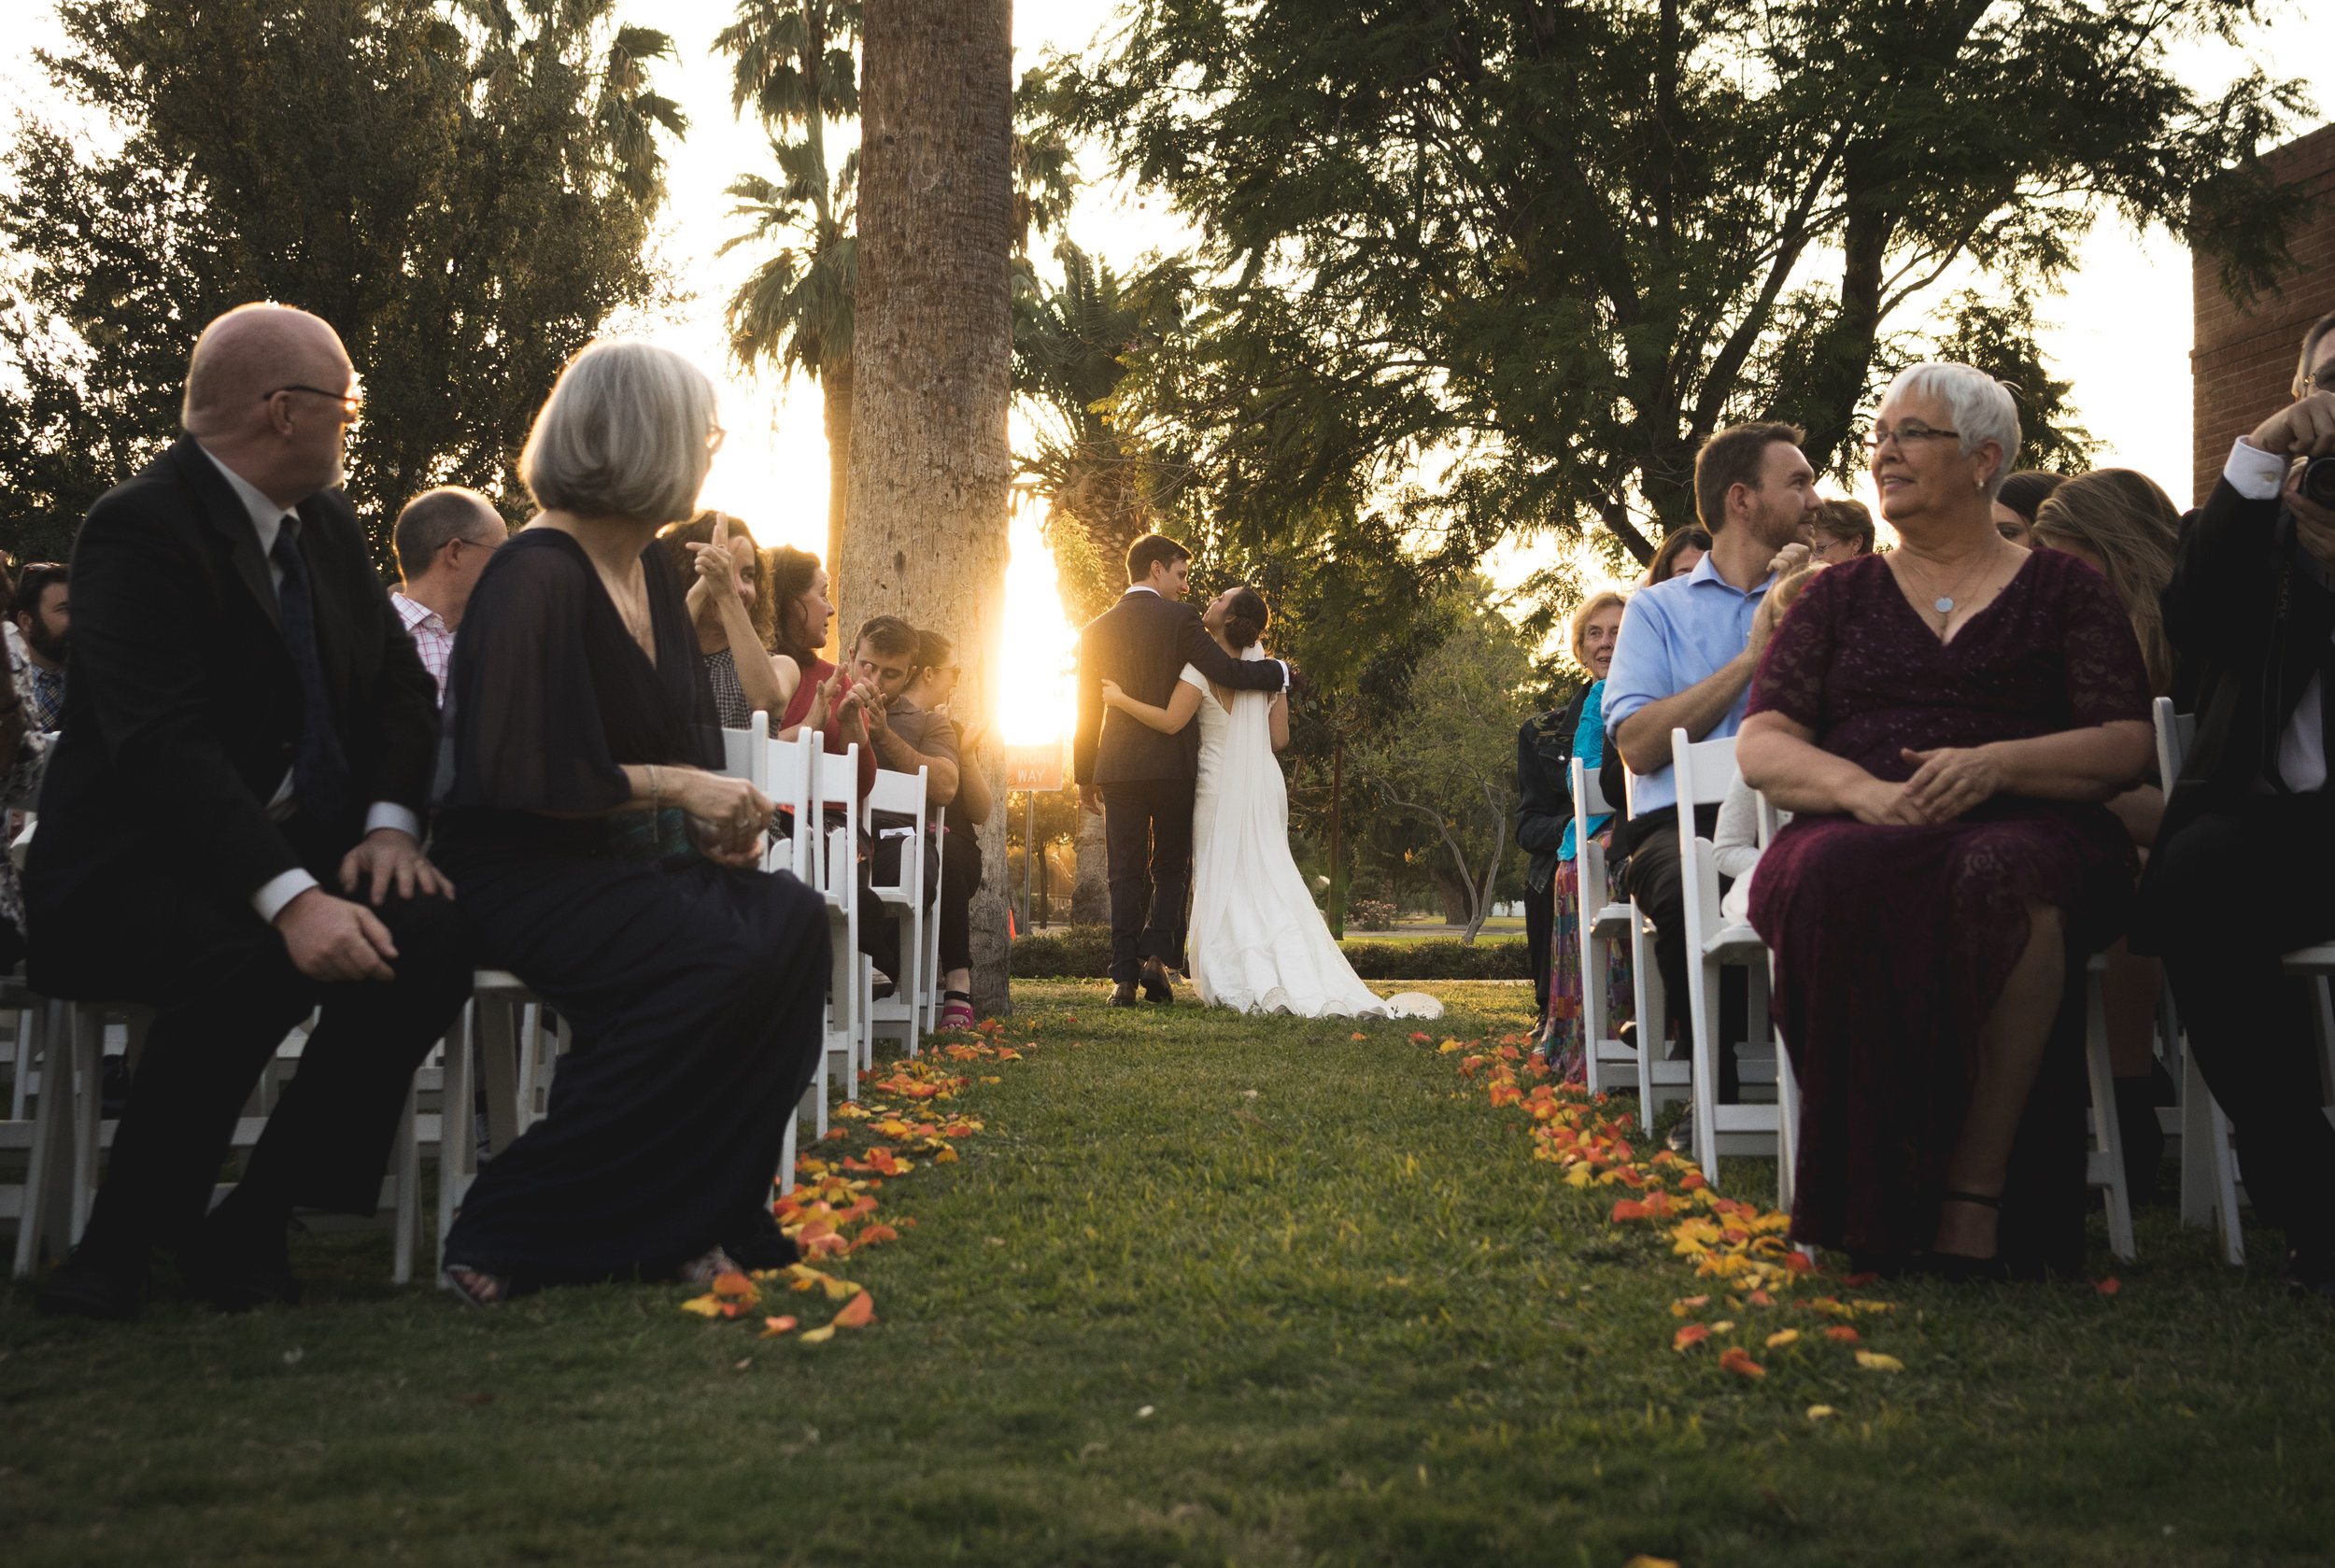 arizona wedding encanto park az phoenix wedding fall autumn